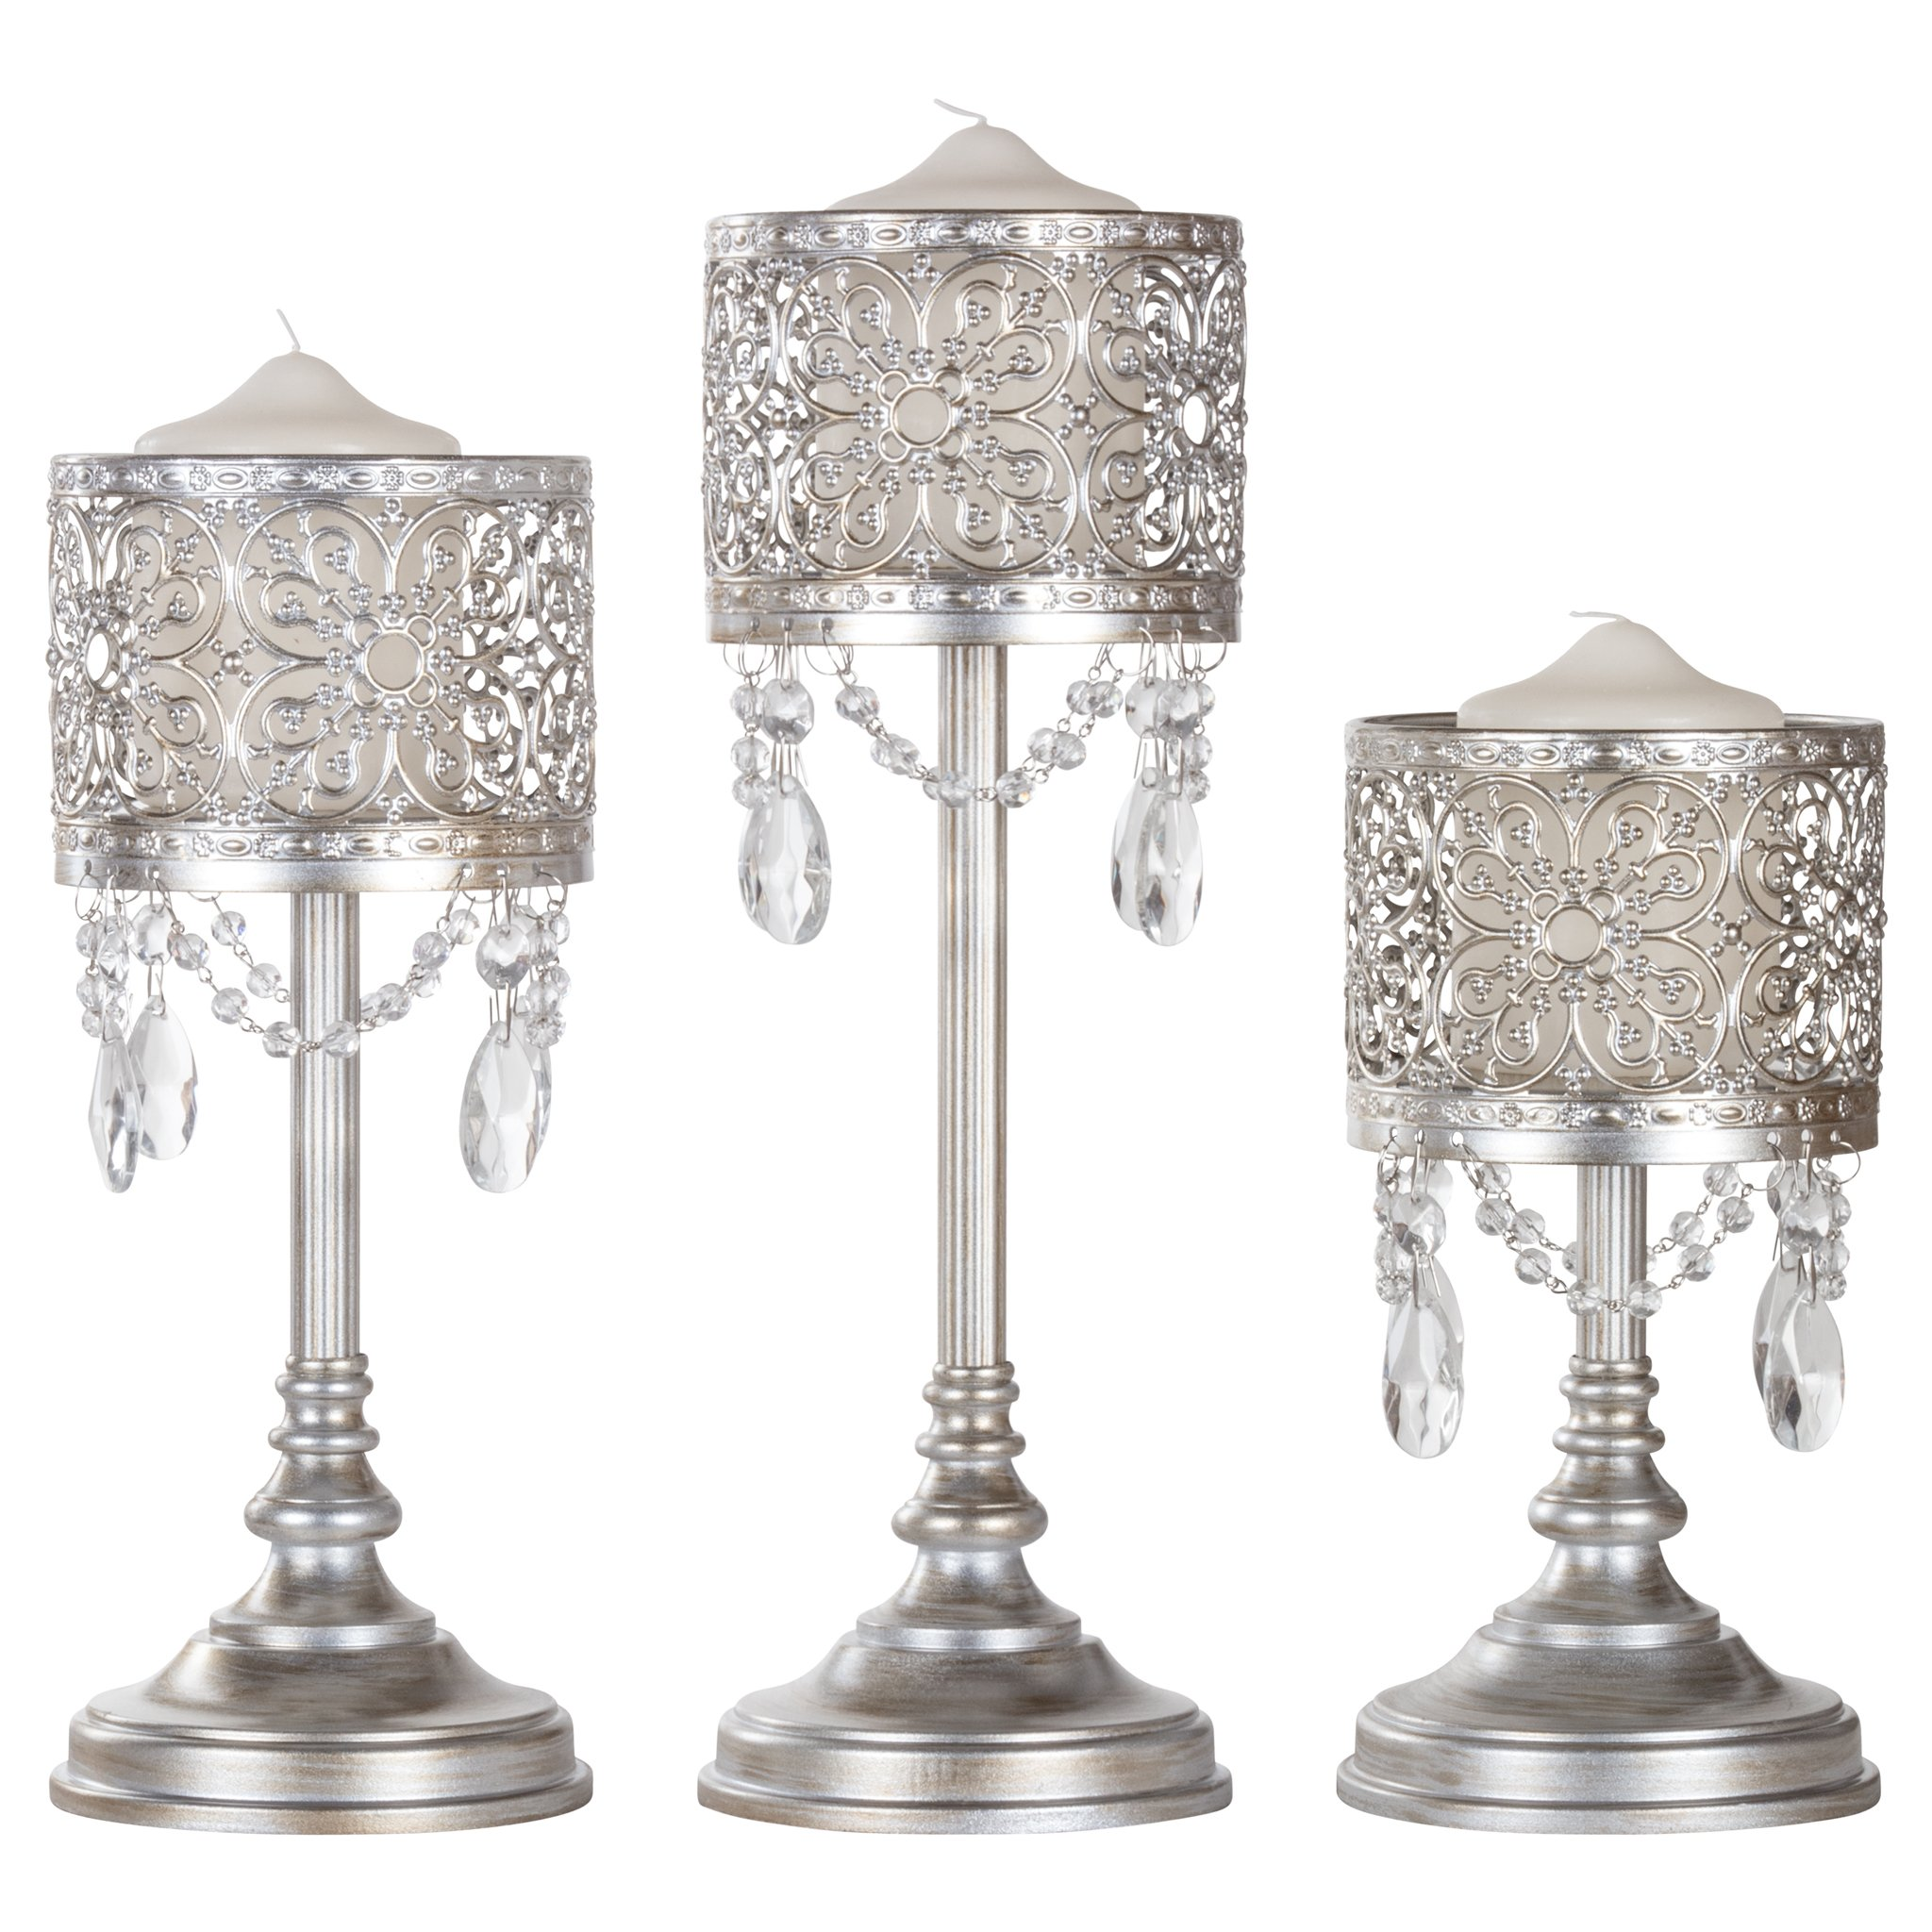 Click here to buy Amalfi Decor 3-Piece Vintage Metal Hurricane Pillar Candle Holder Set (Silver) | Stainless Steel Frame with....